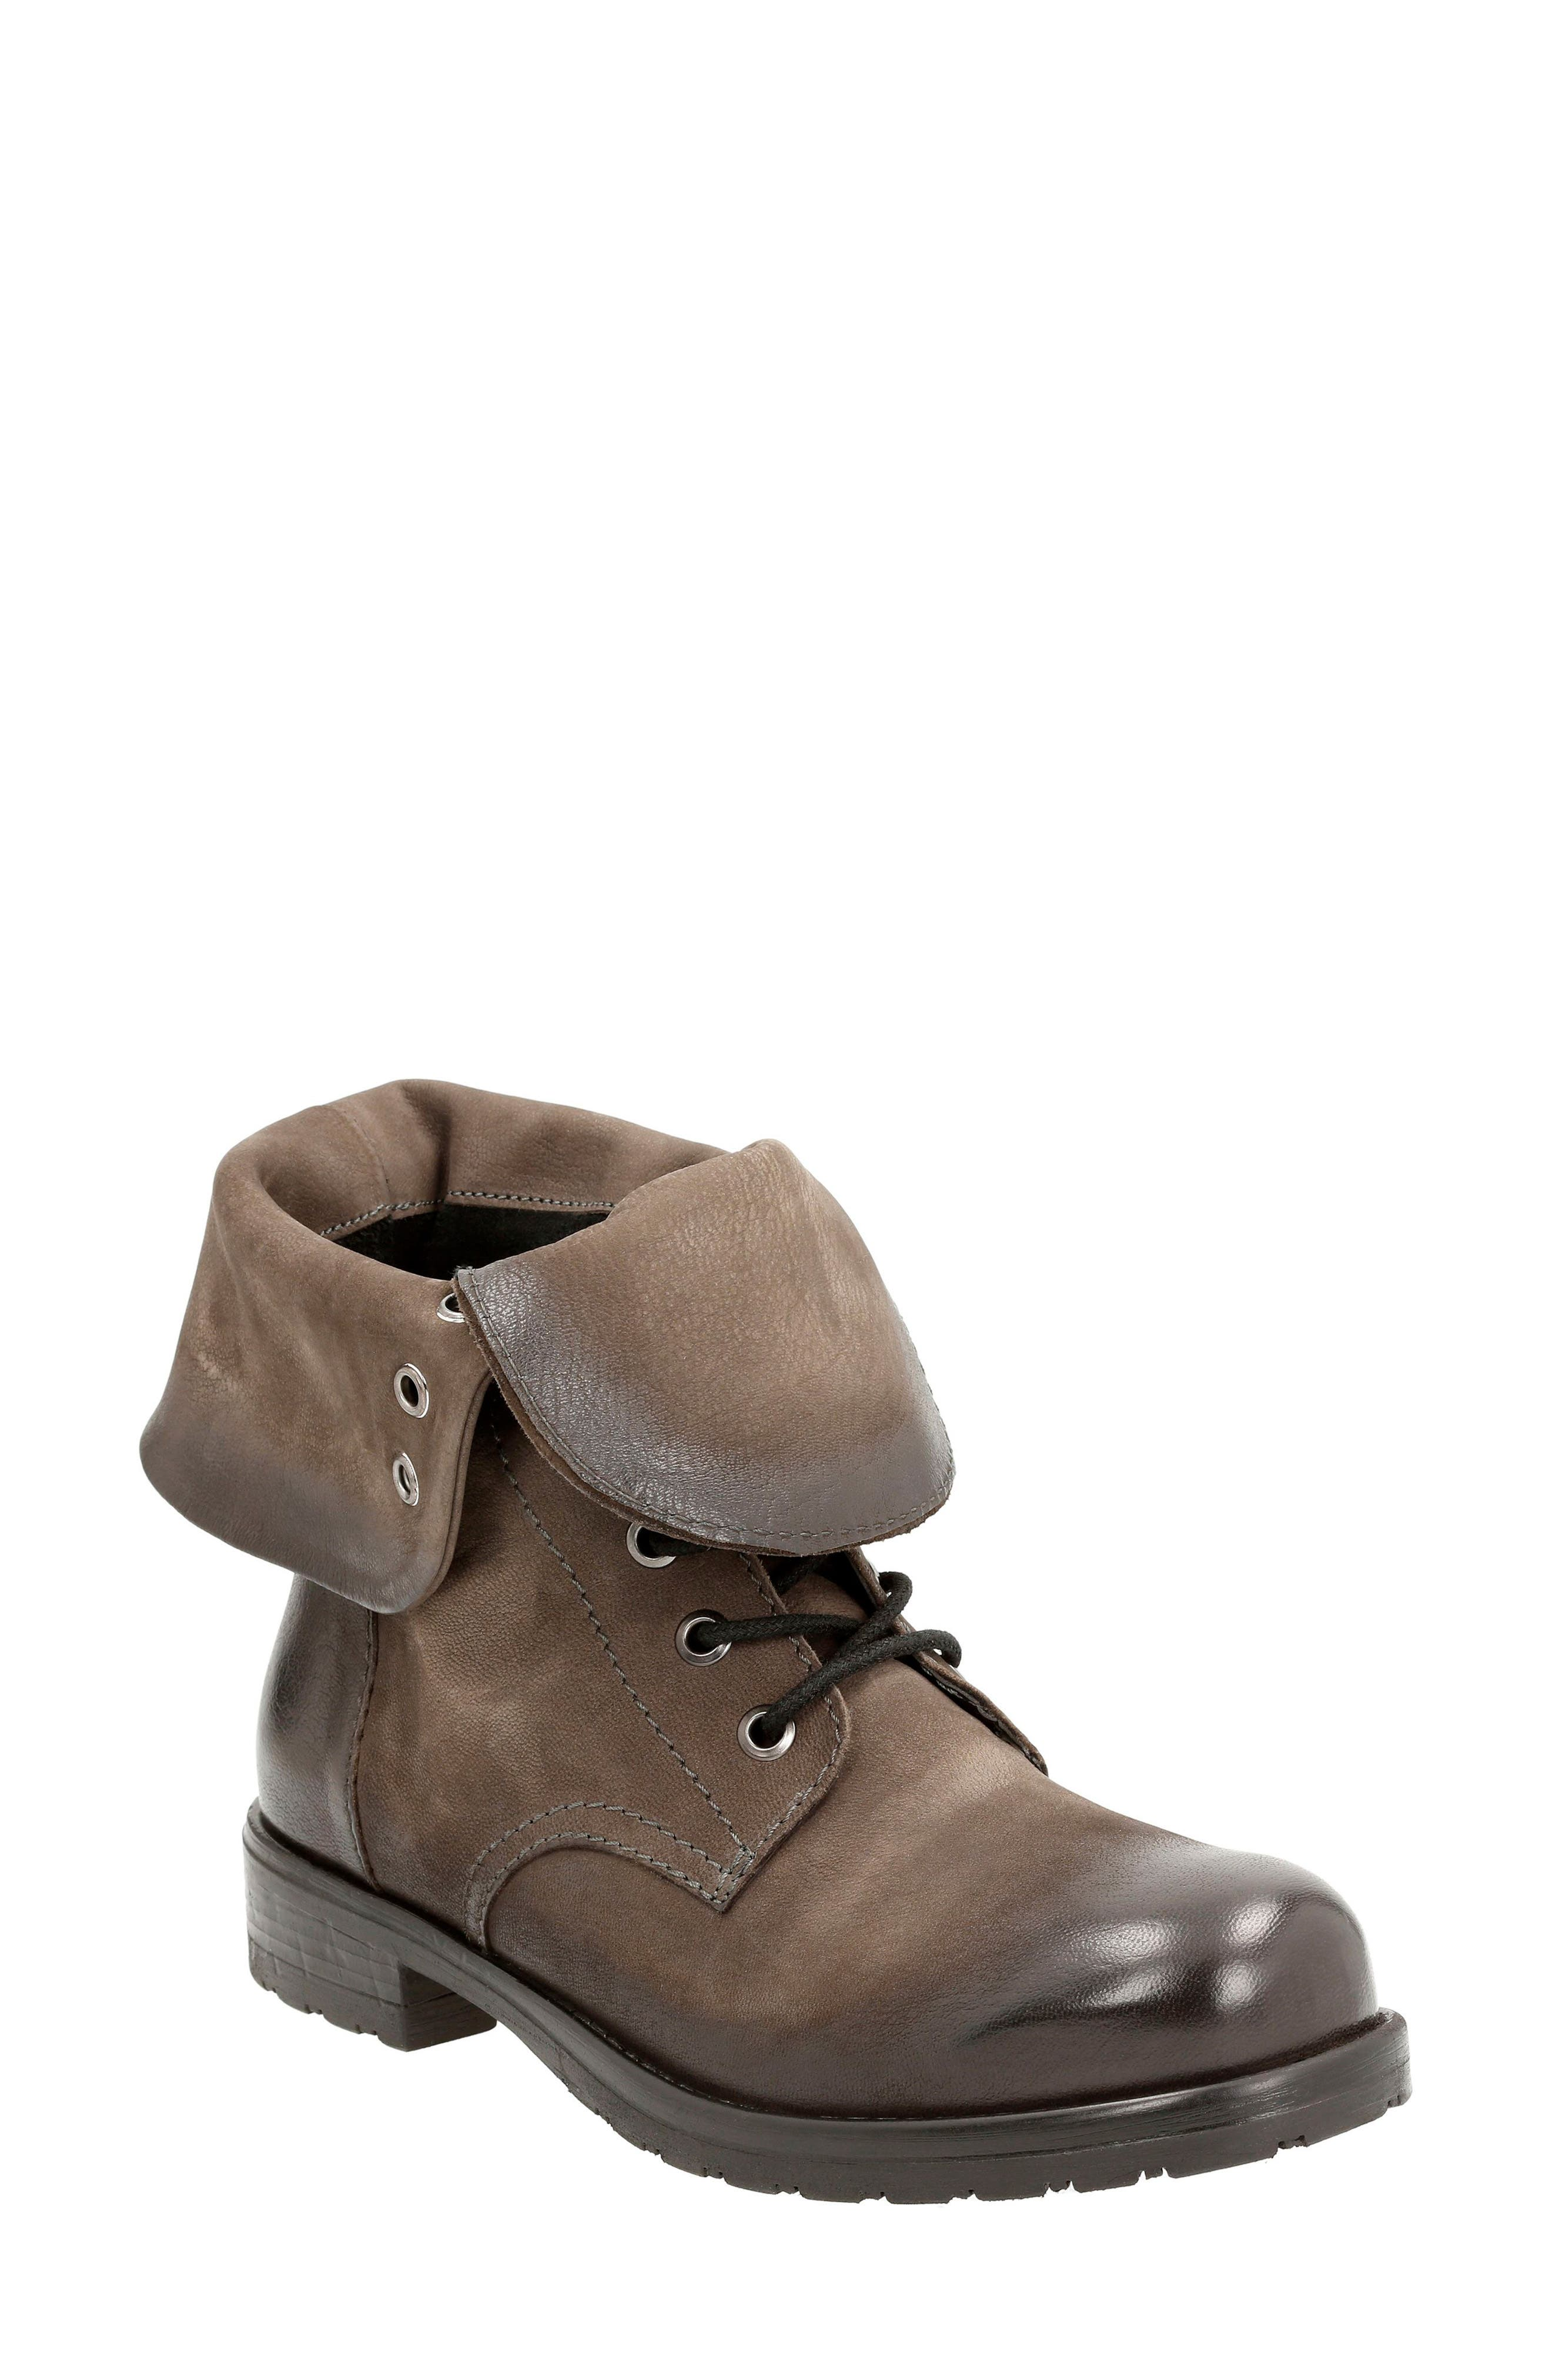 CLARKS<SUP>®</SUP> Minoa River Boot, Main, color, 250